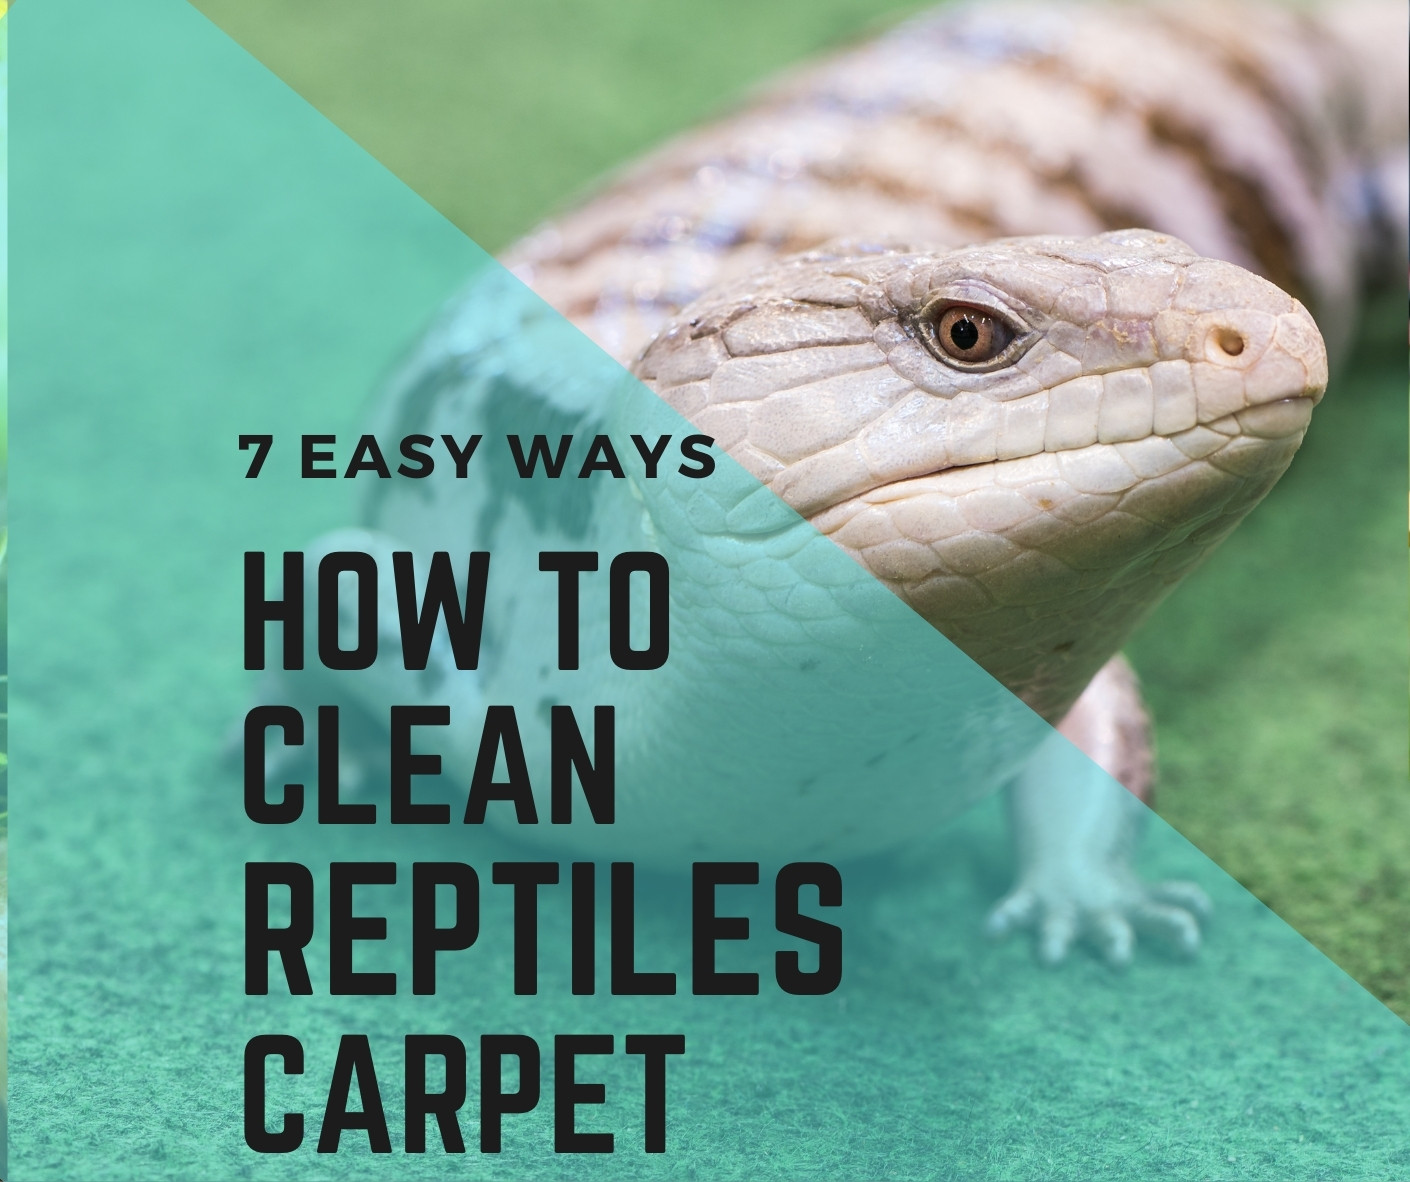 How to clean reptile carpet? easy ways